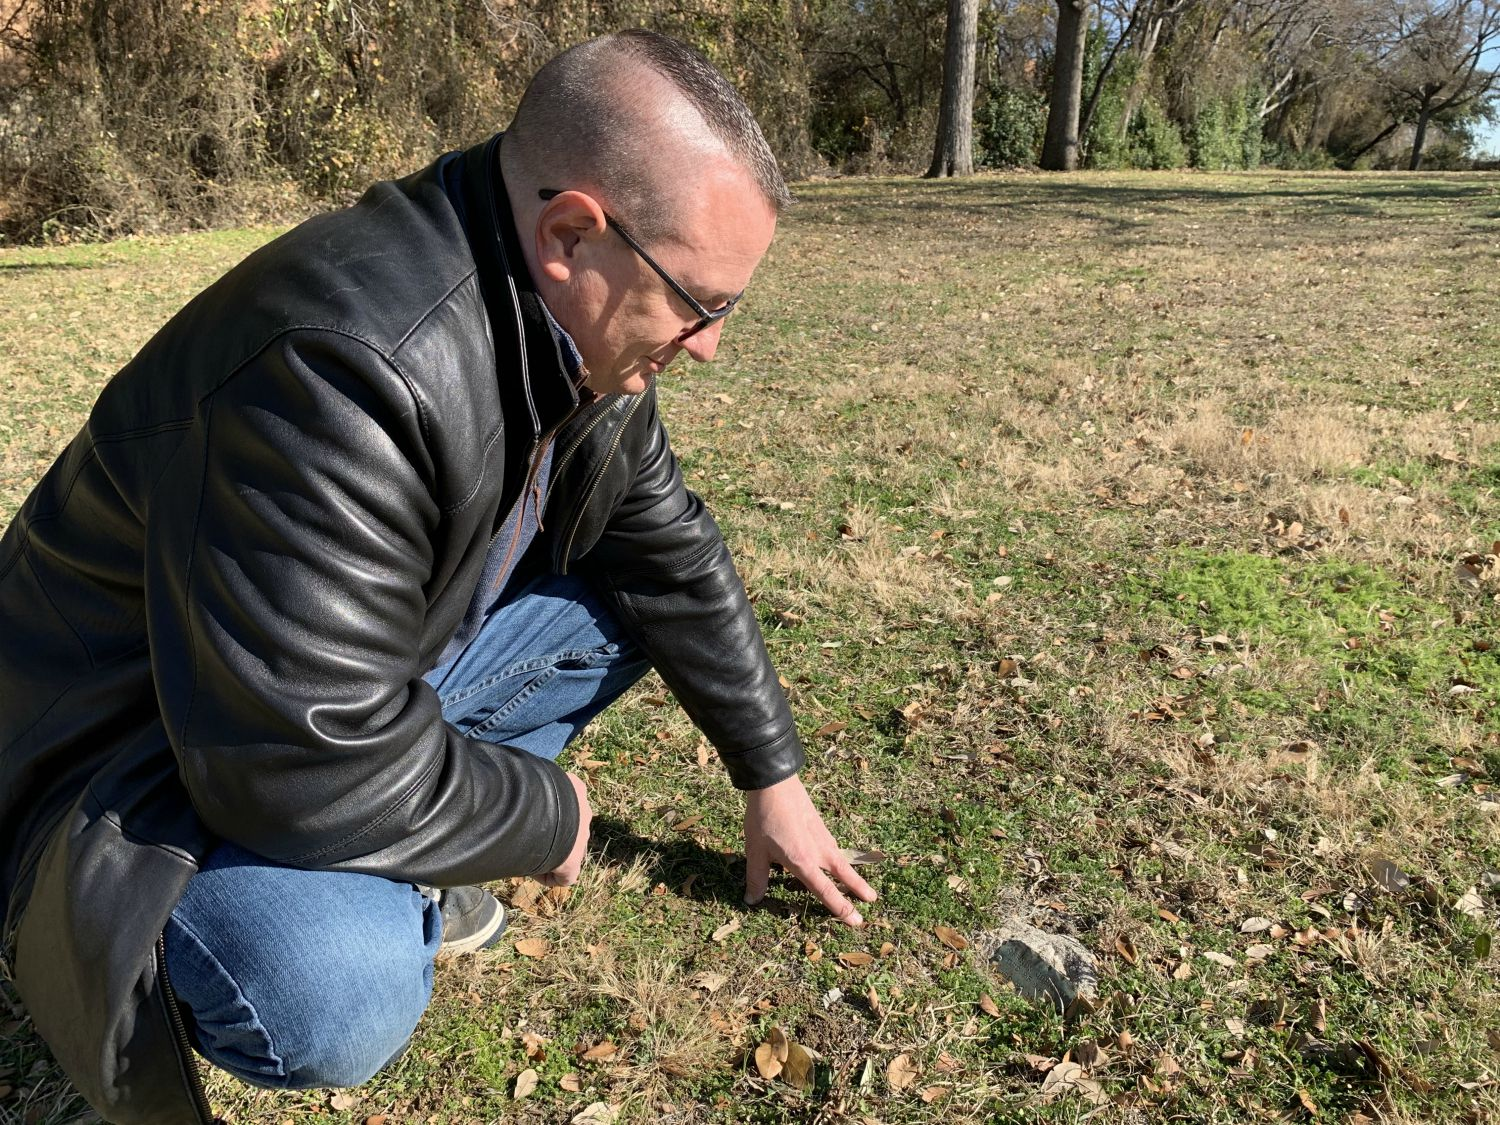 Dan Babb inspects one of the surviving markers at the old Dallas City Cemetery, which has become his obsession — or addiction, depending on whom you ask.